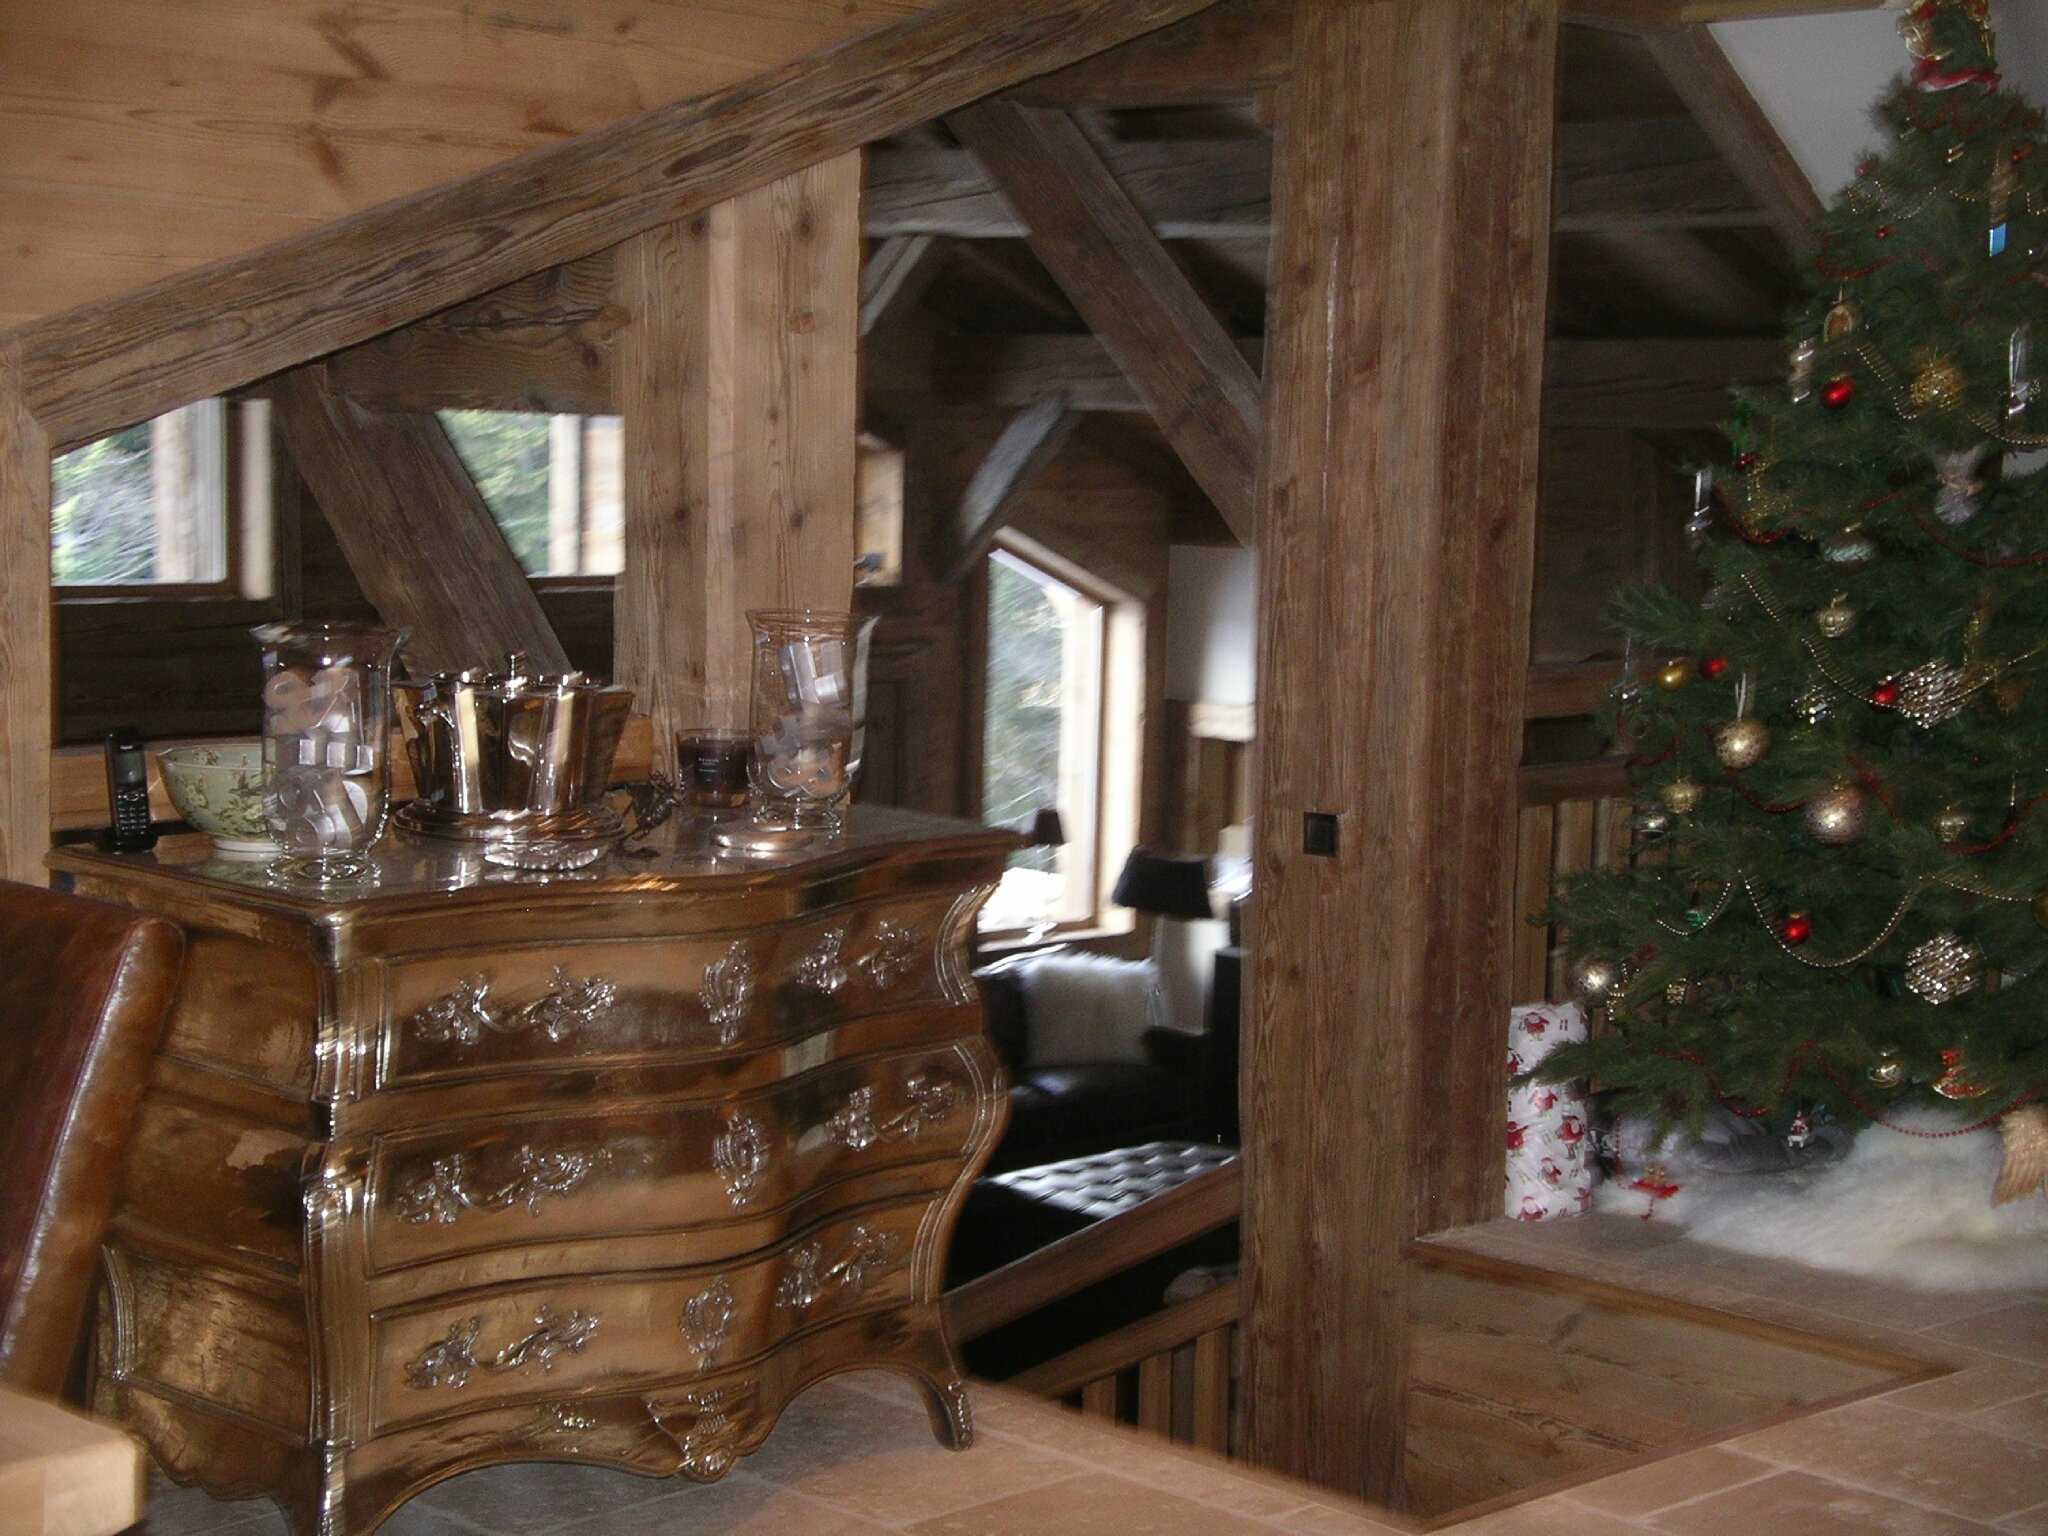 imgp0550 photo de agencement interieur d 39 un chalet savoyard le gecko ebenisterie agencement. Black Bedroom Furniture Sets. Home Design Ideas